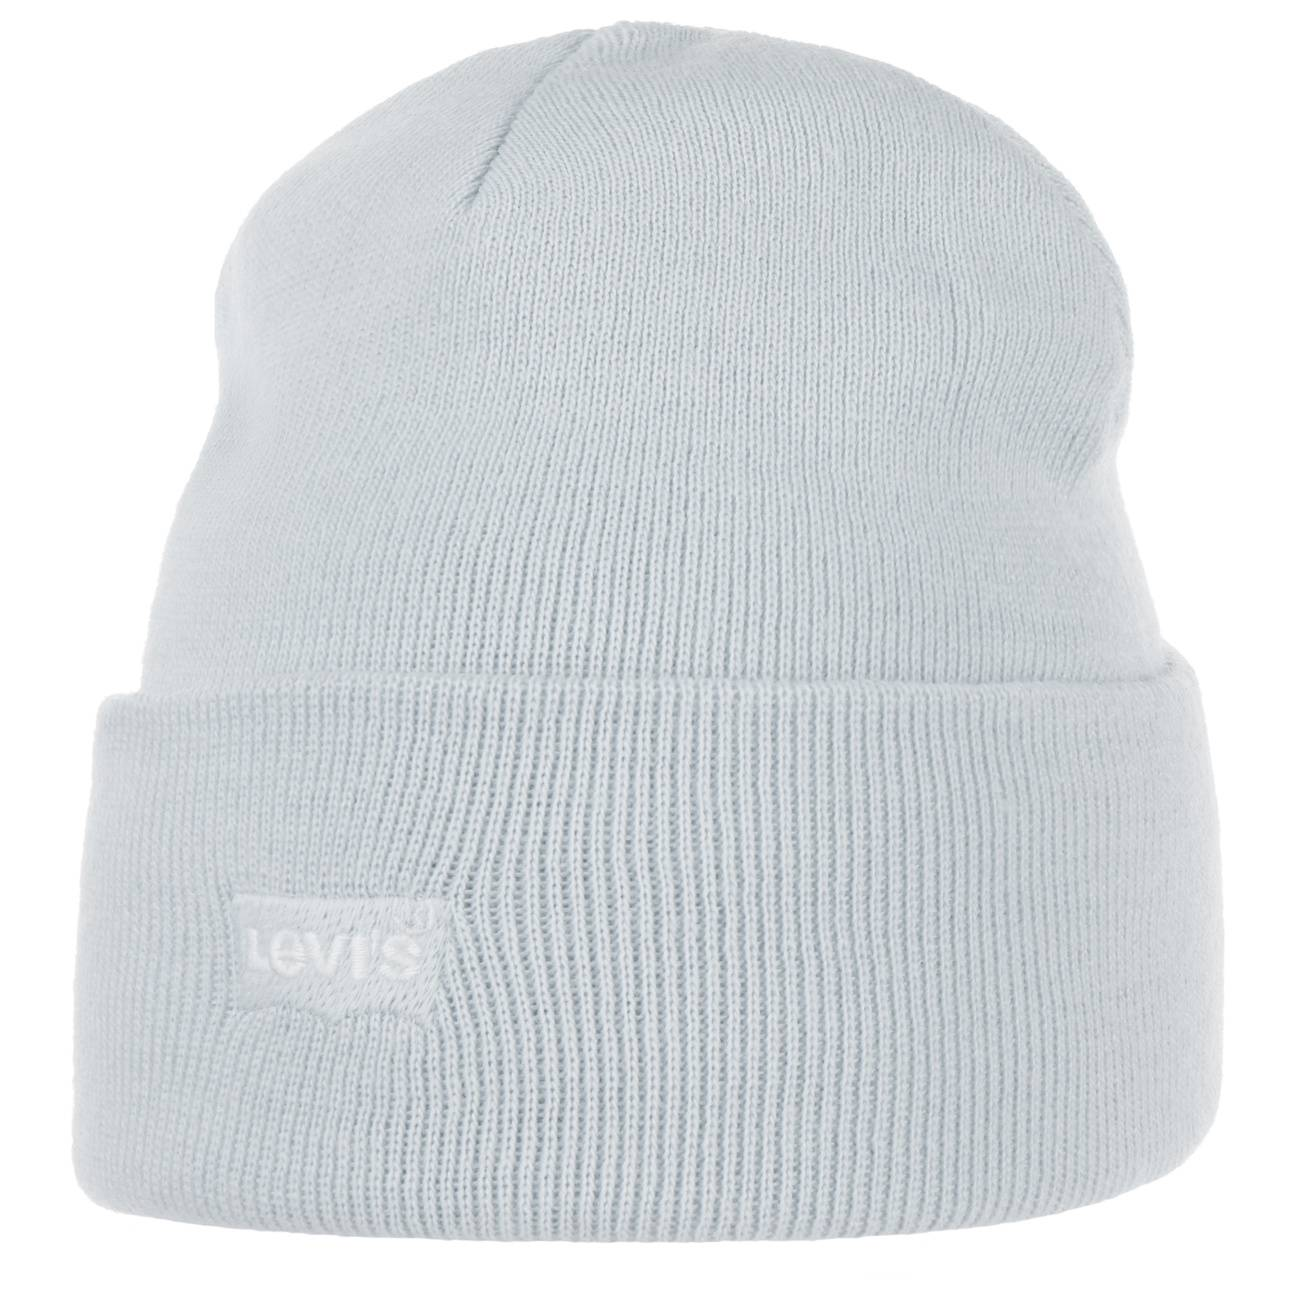 Levis Mini Batwing Tone in Tone Beanie Hat by Levis Col.  light blue, size One Size